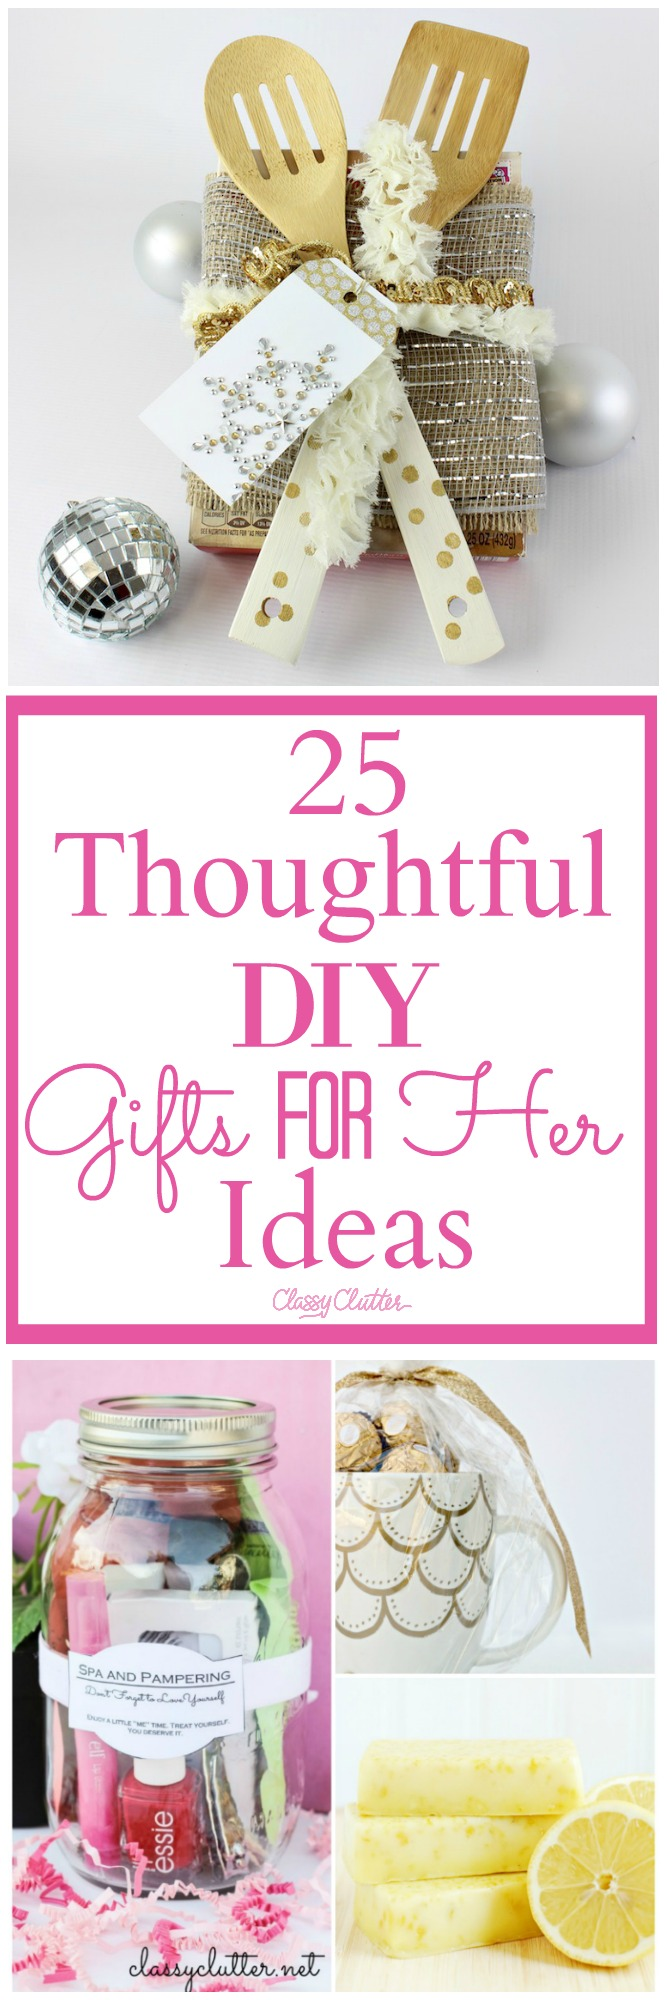 25 thoughtful diy gifts for her ideas classy clutter 2017 gift ideas for her